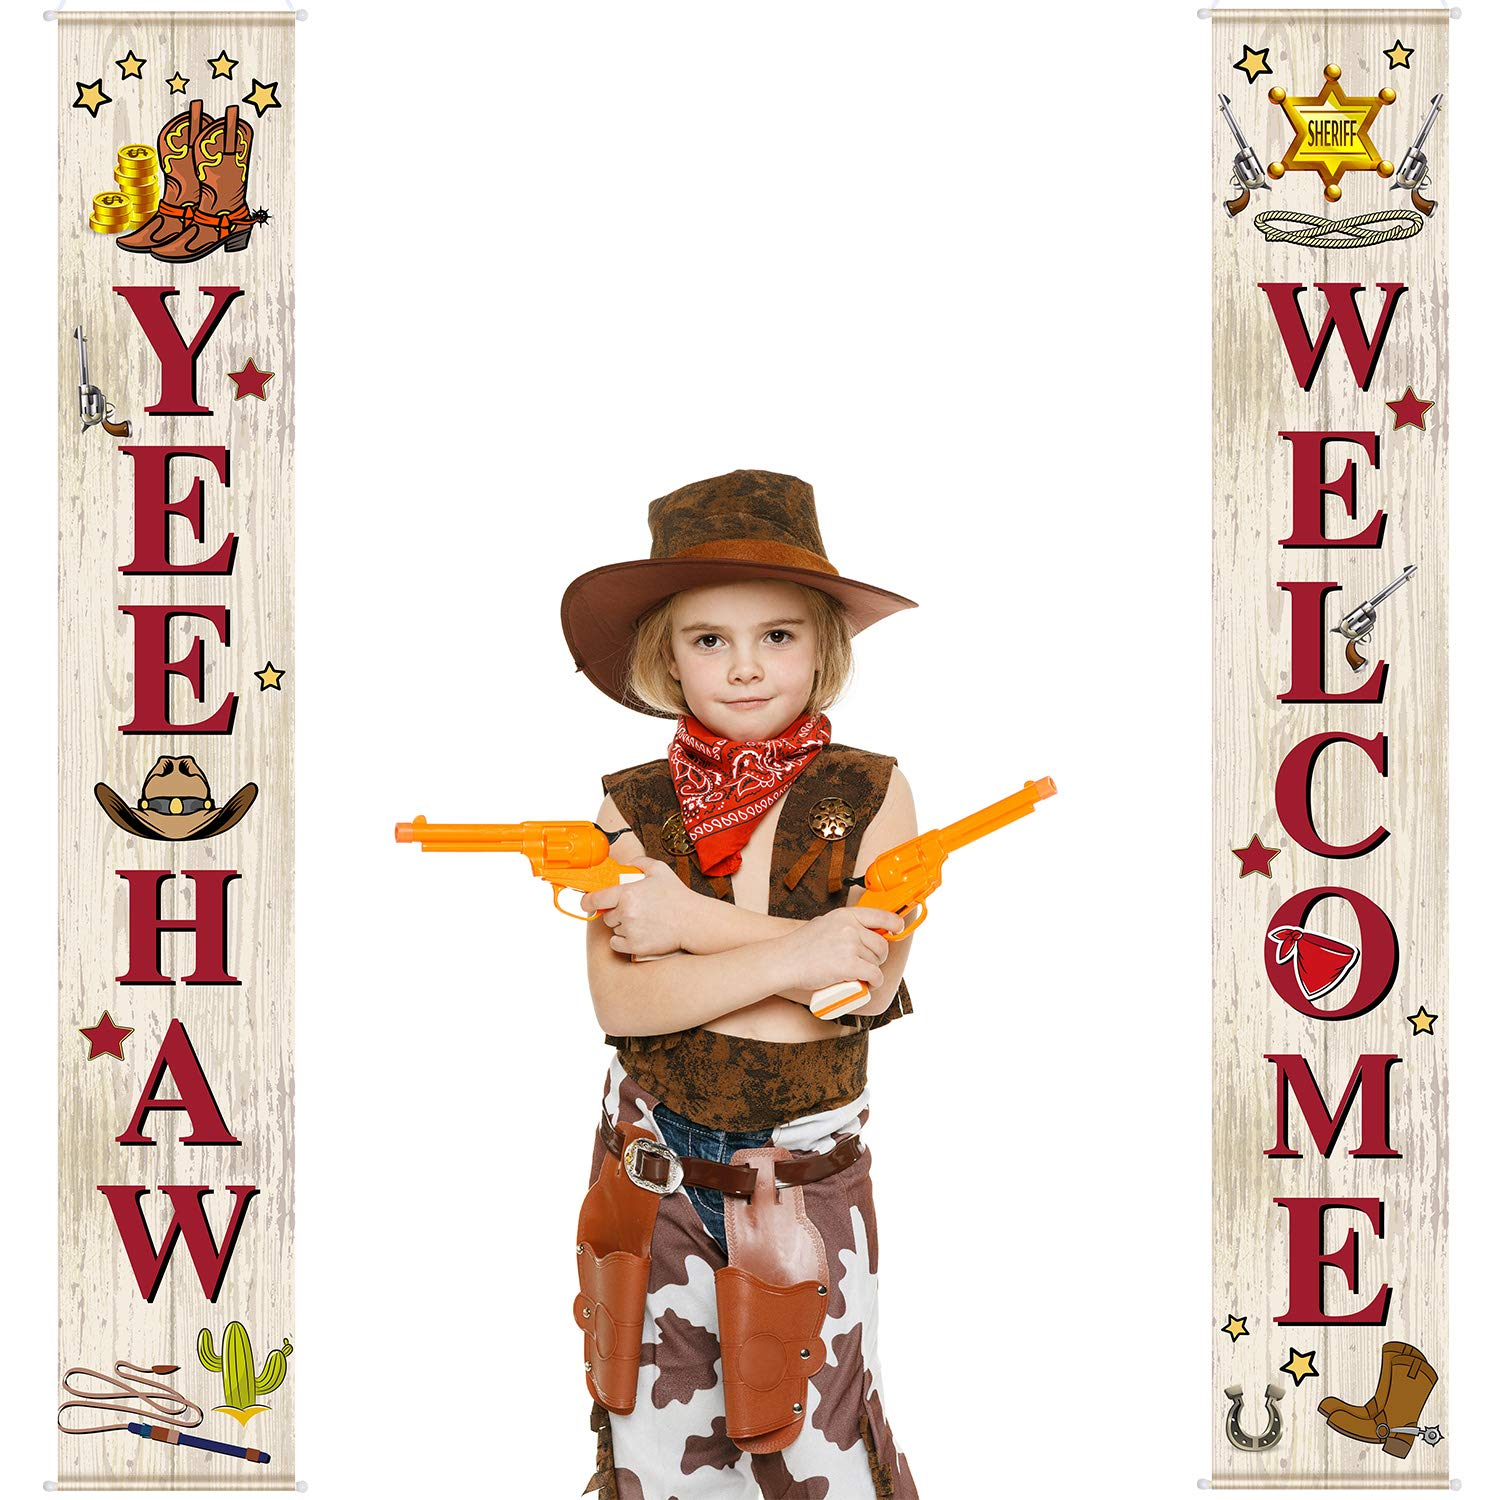 West Cowboy Yee Haw Garland Party Decoration Set Cowboy Porch Sign Welcome Cowboy Banner Hanging Decoration for Indoor/Outdoor Western Cowboy Decoration Party Decorations (Natural)